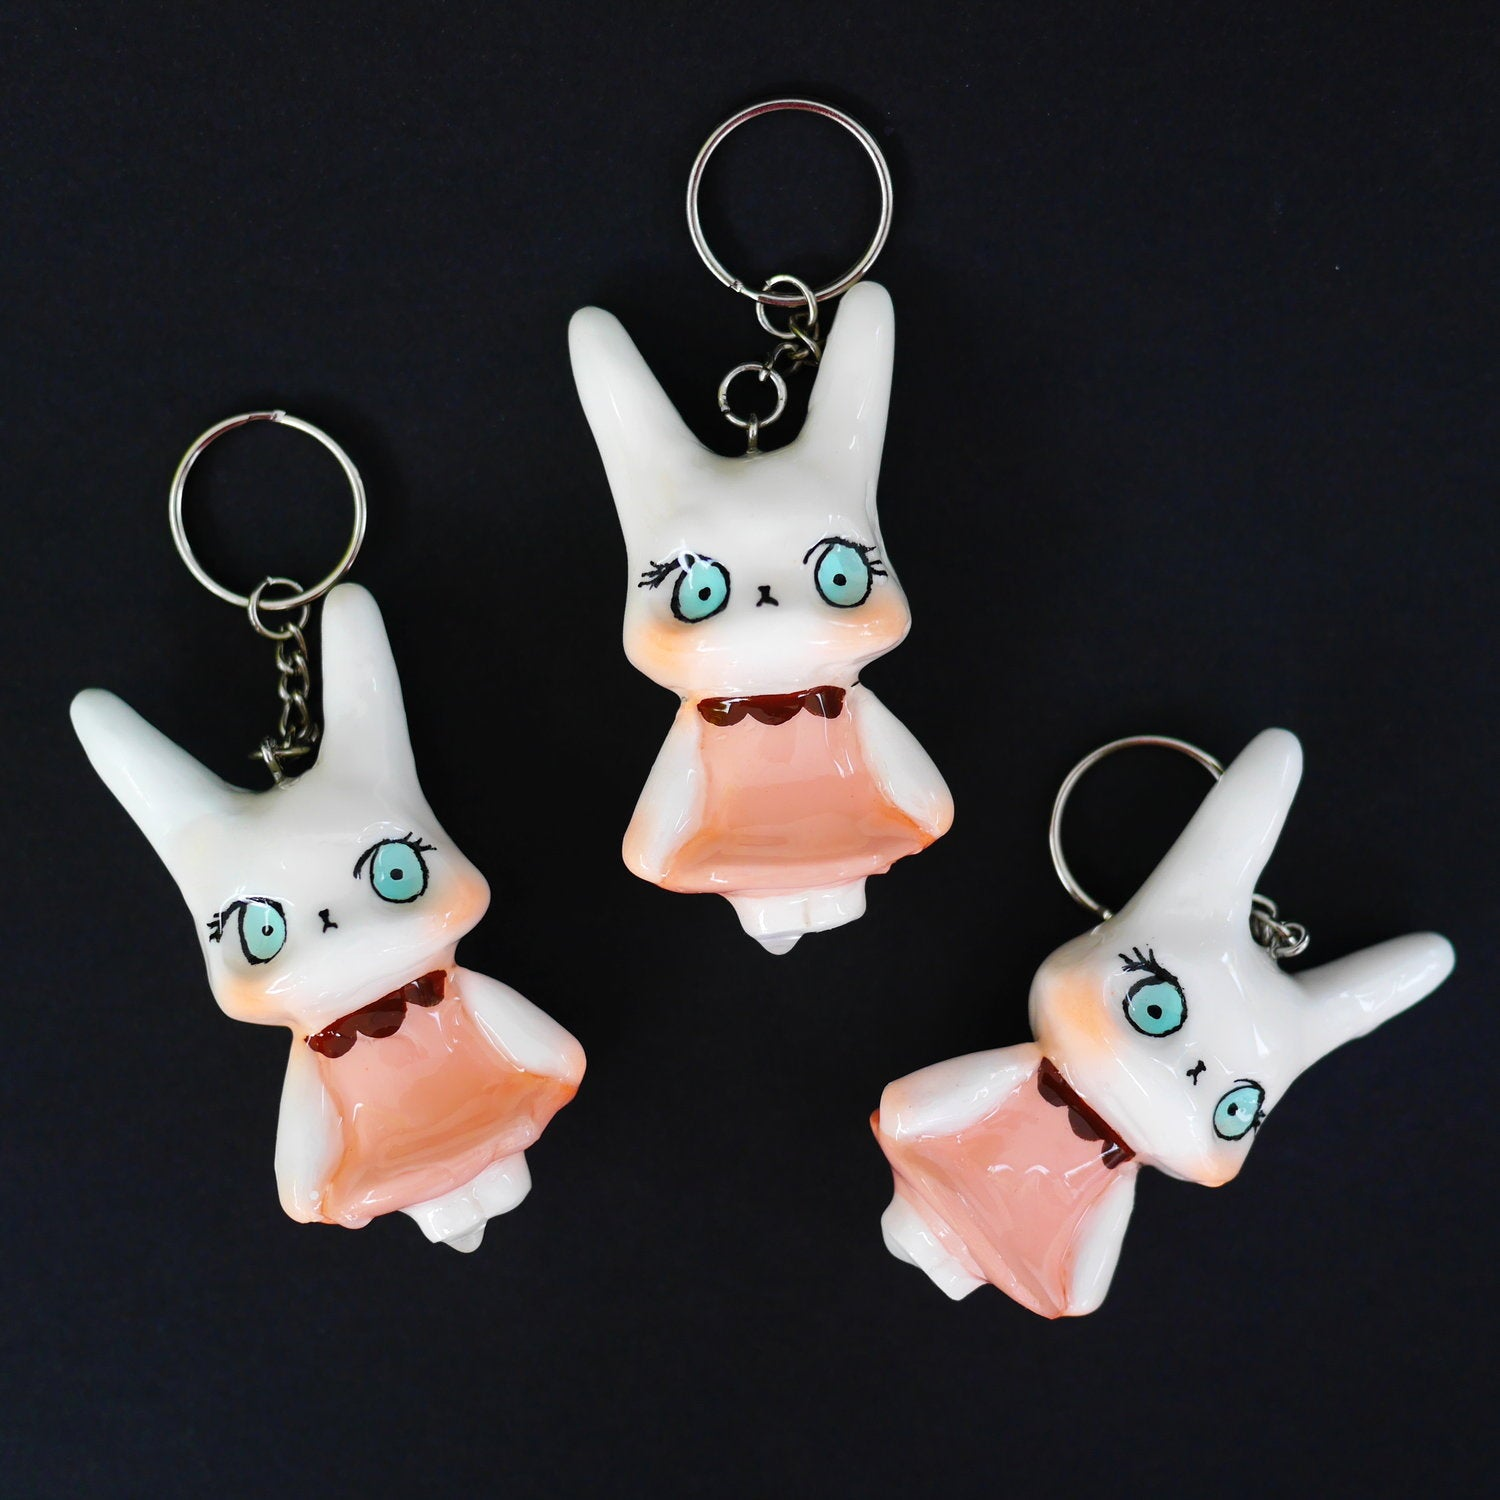 Candie keychain with glossy finish